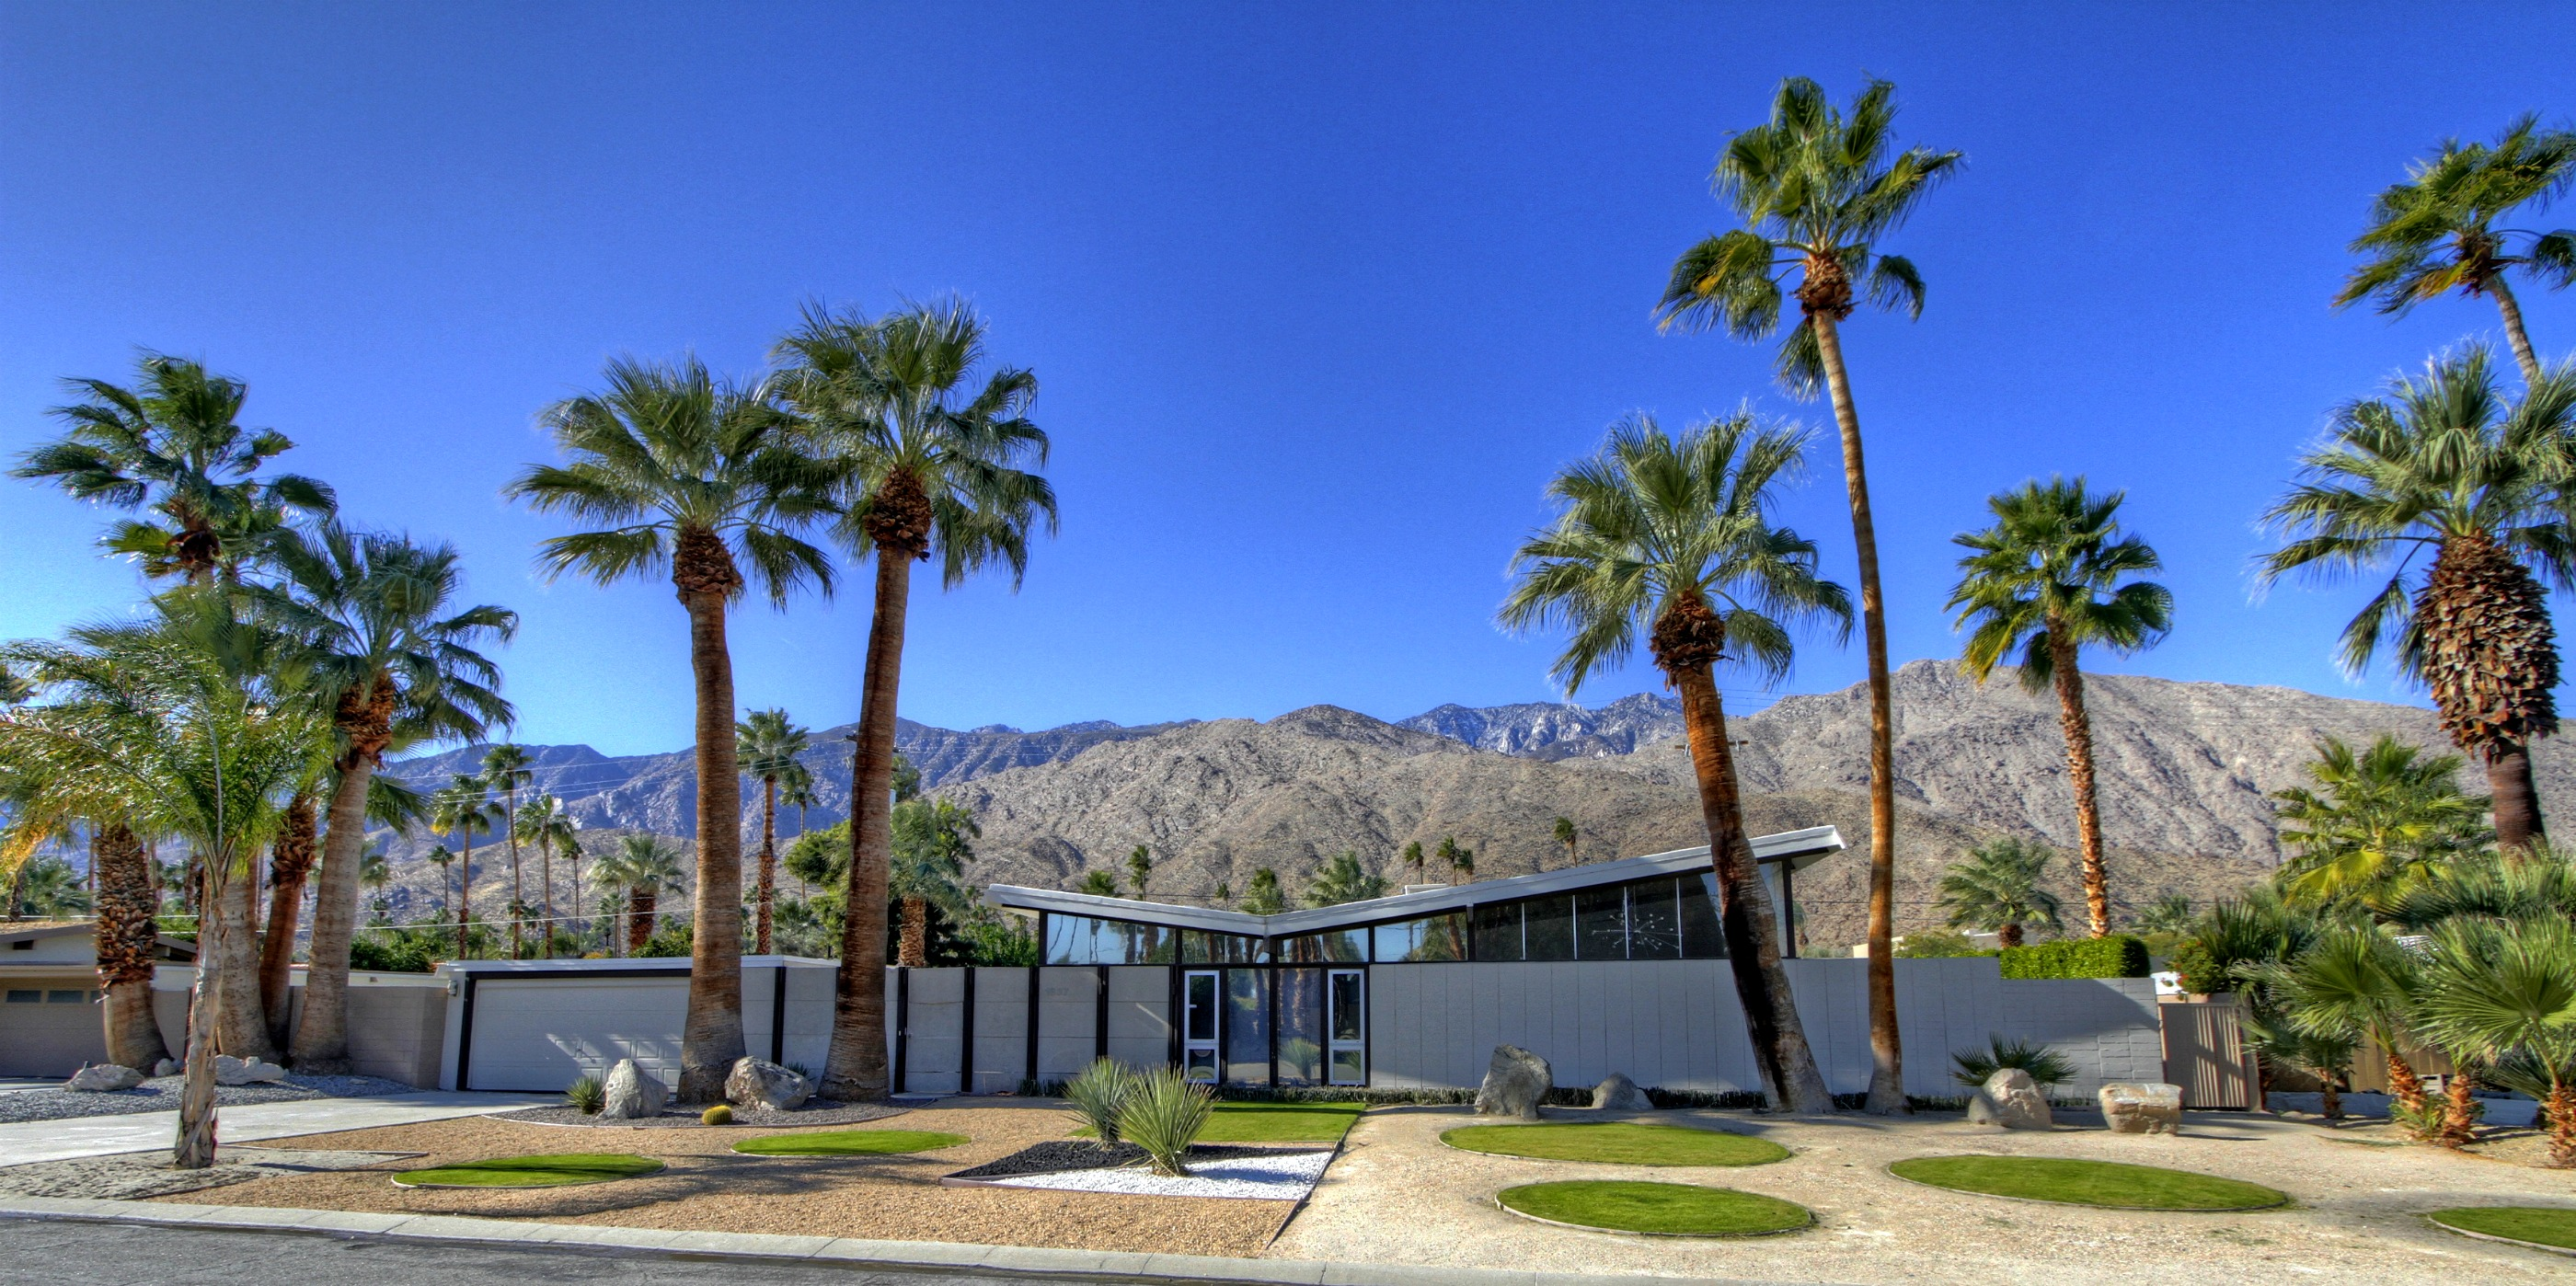 Palm springs real estate gets huge boost from bnp paribas for Twin palms estates palm springs